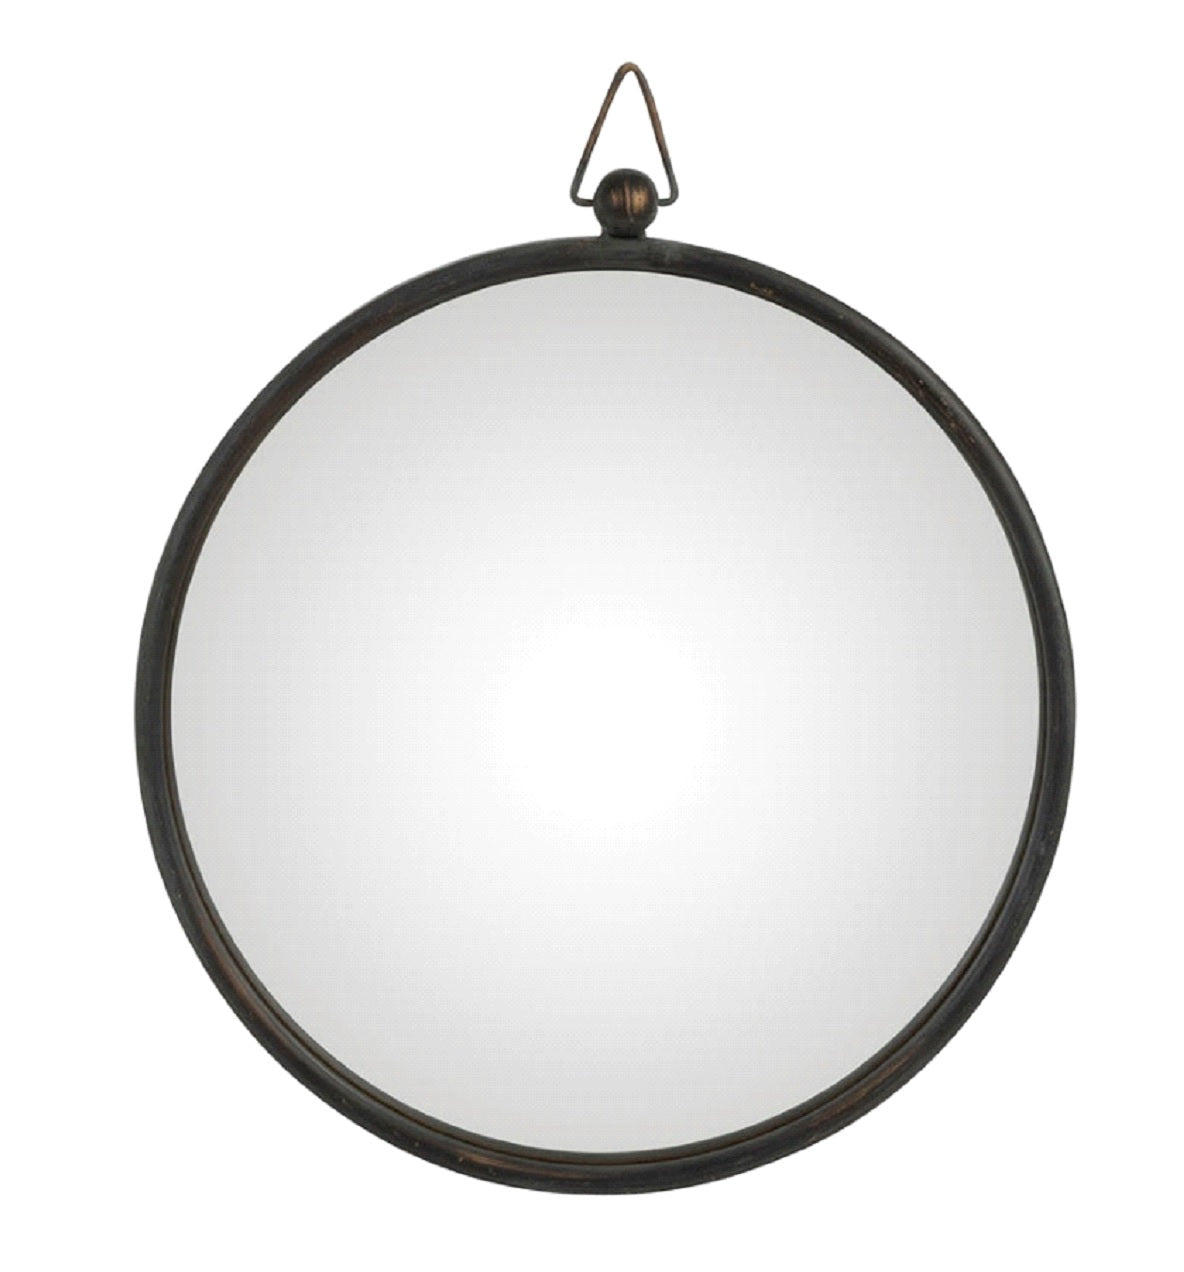 Round Black Convex Mirror